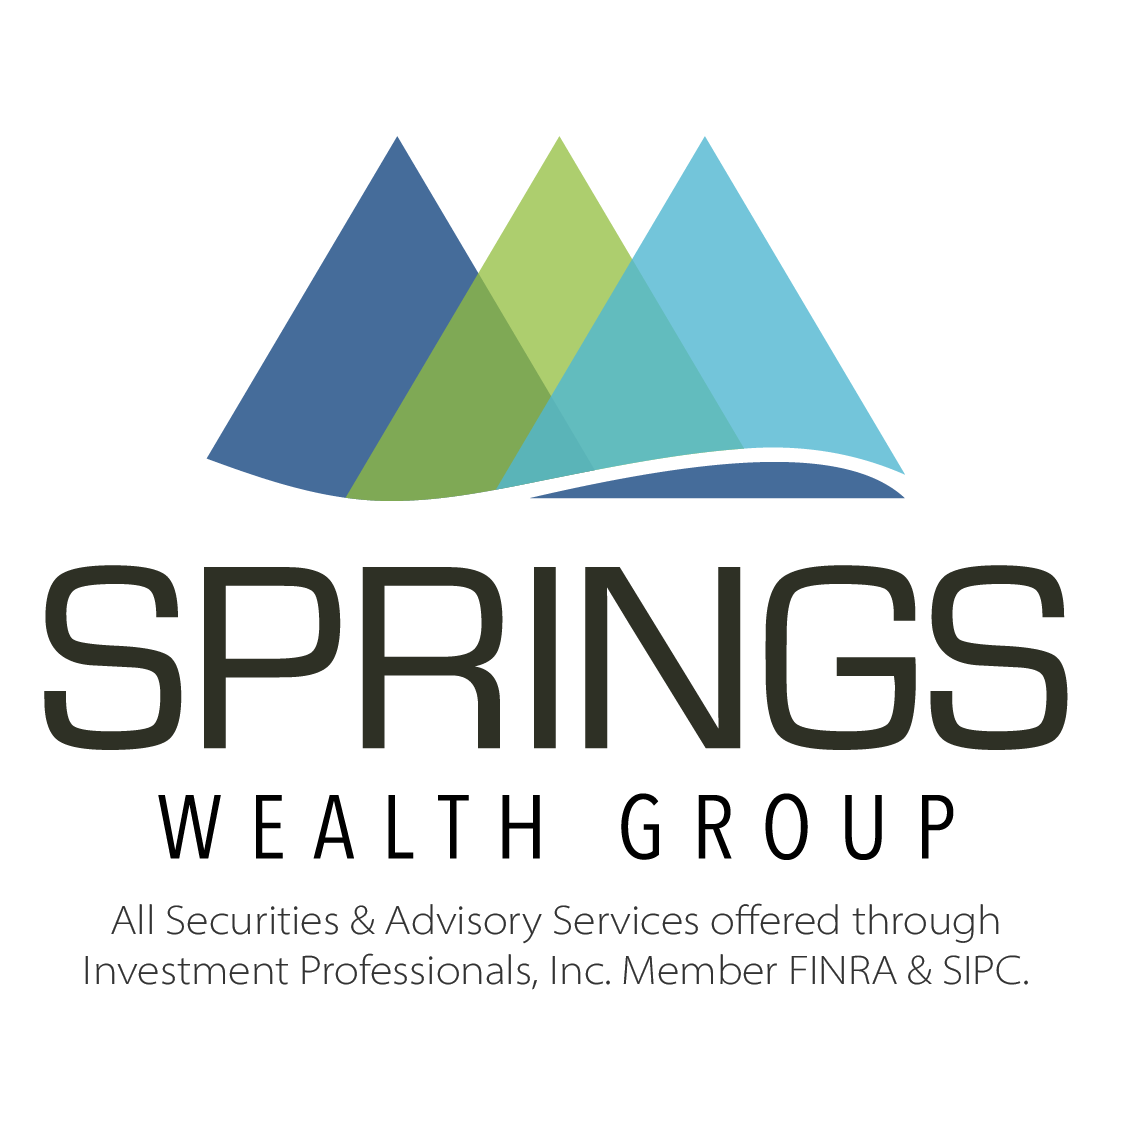 Springs Wealth Group